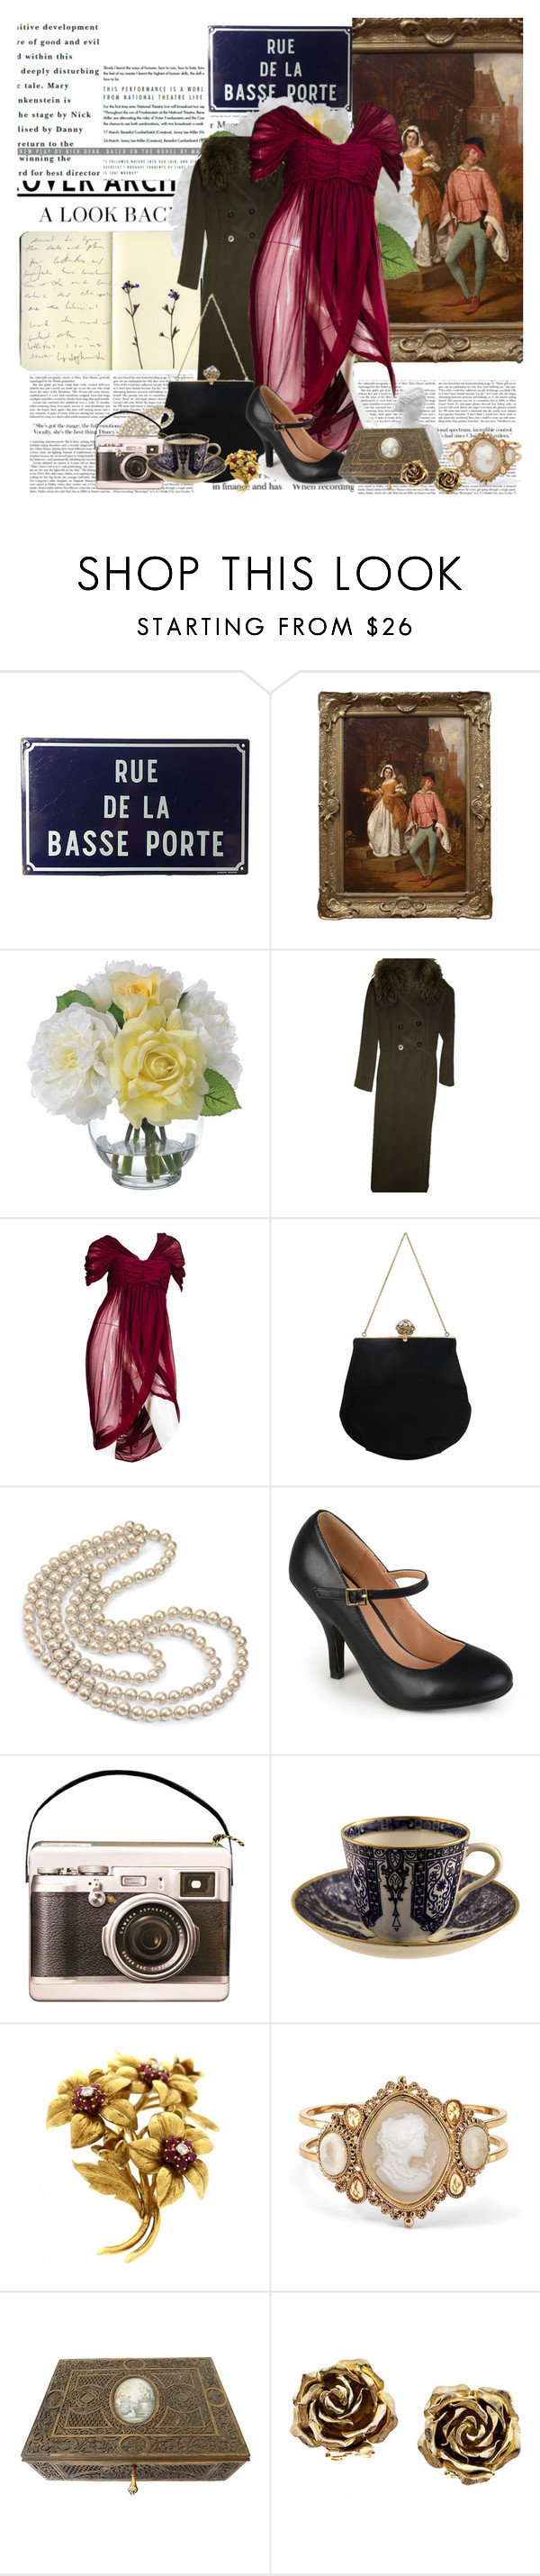 """""""rue de la"""" by noextrate ❤ liked on Polyvore featuring Moleskine, Diane James, Marella, Alexander McQueen, Koret, Sweet Romance, Journee Collection, Tiffany & Co. and Palm Beach Jewelry"""